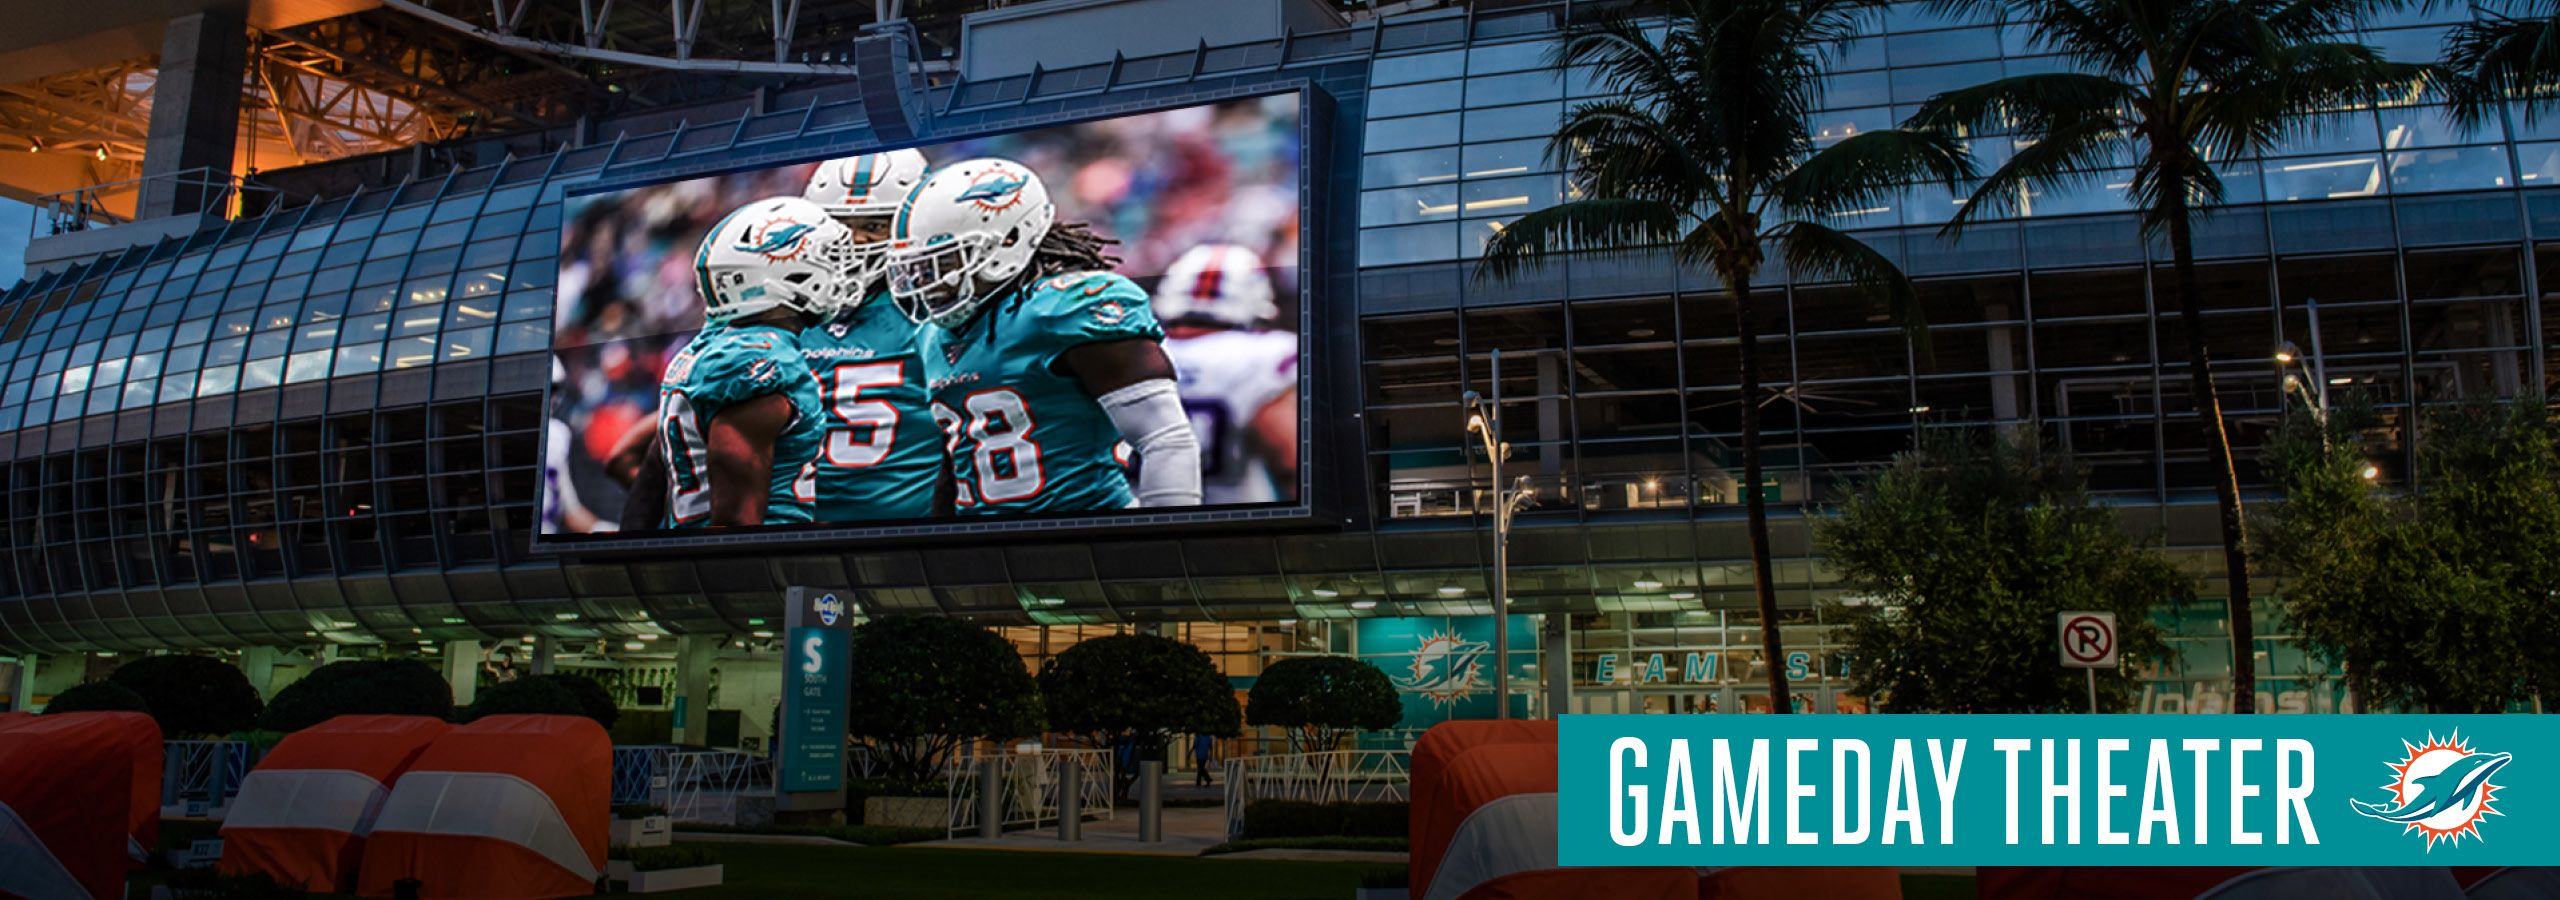 Graphic: Header - Gameday Theater